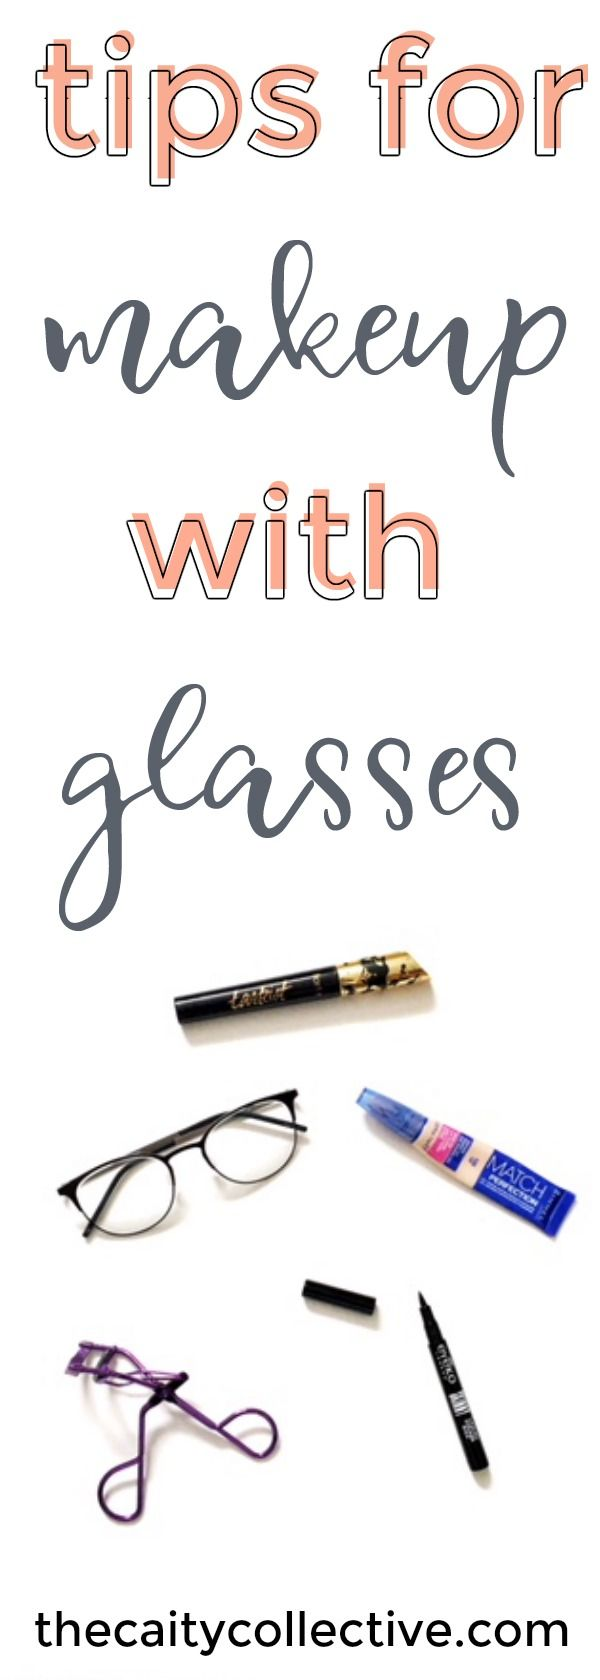 The best tips for making your making stand out under your glasses.  Tips for makeup with glasses   Makeup for glasses